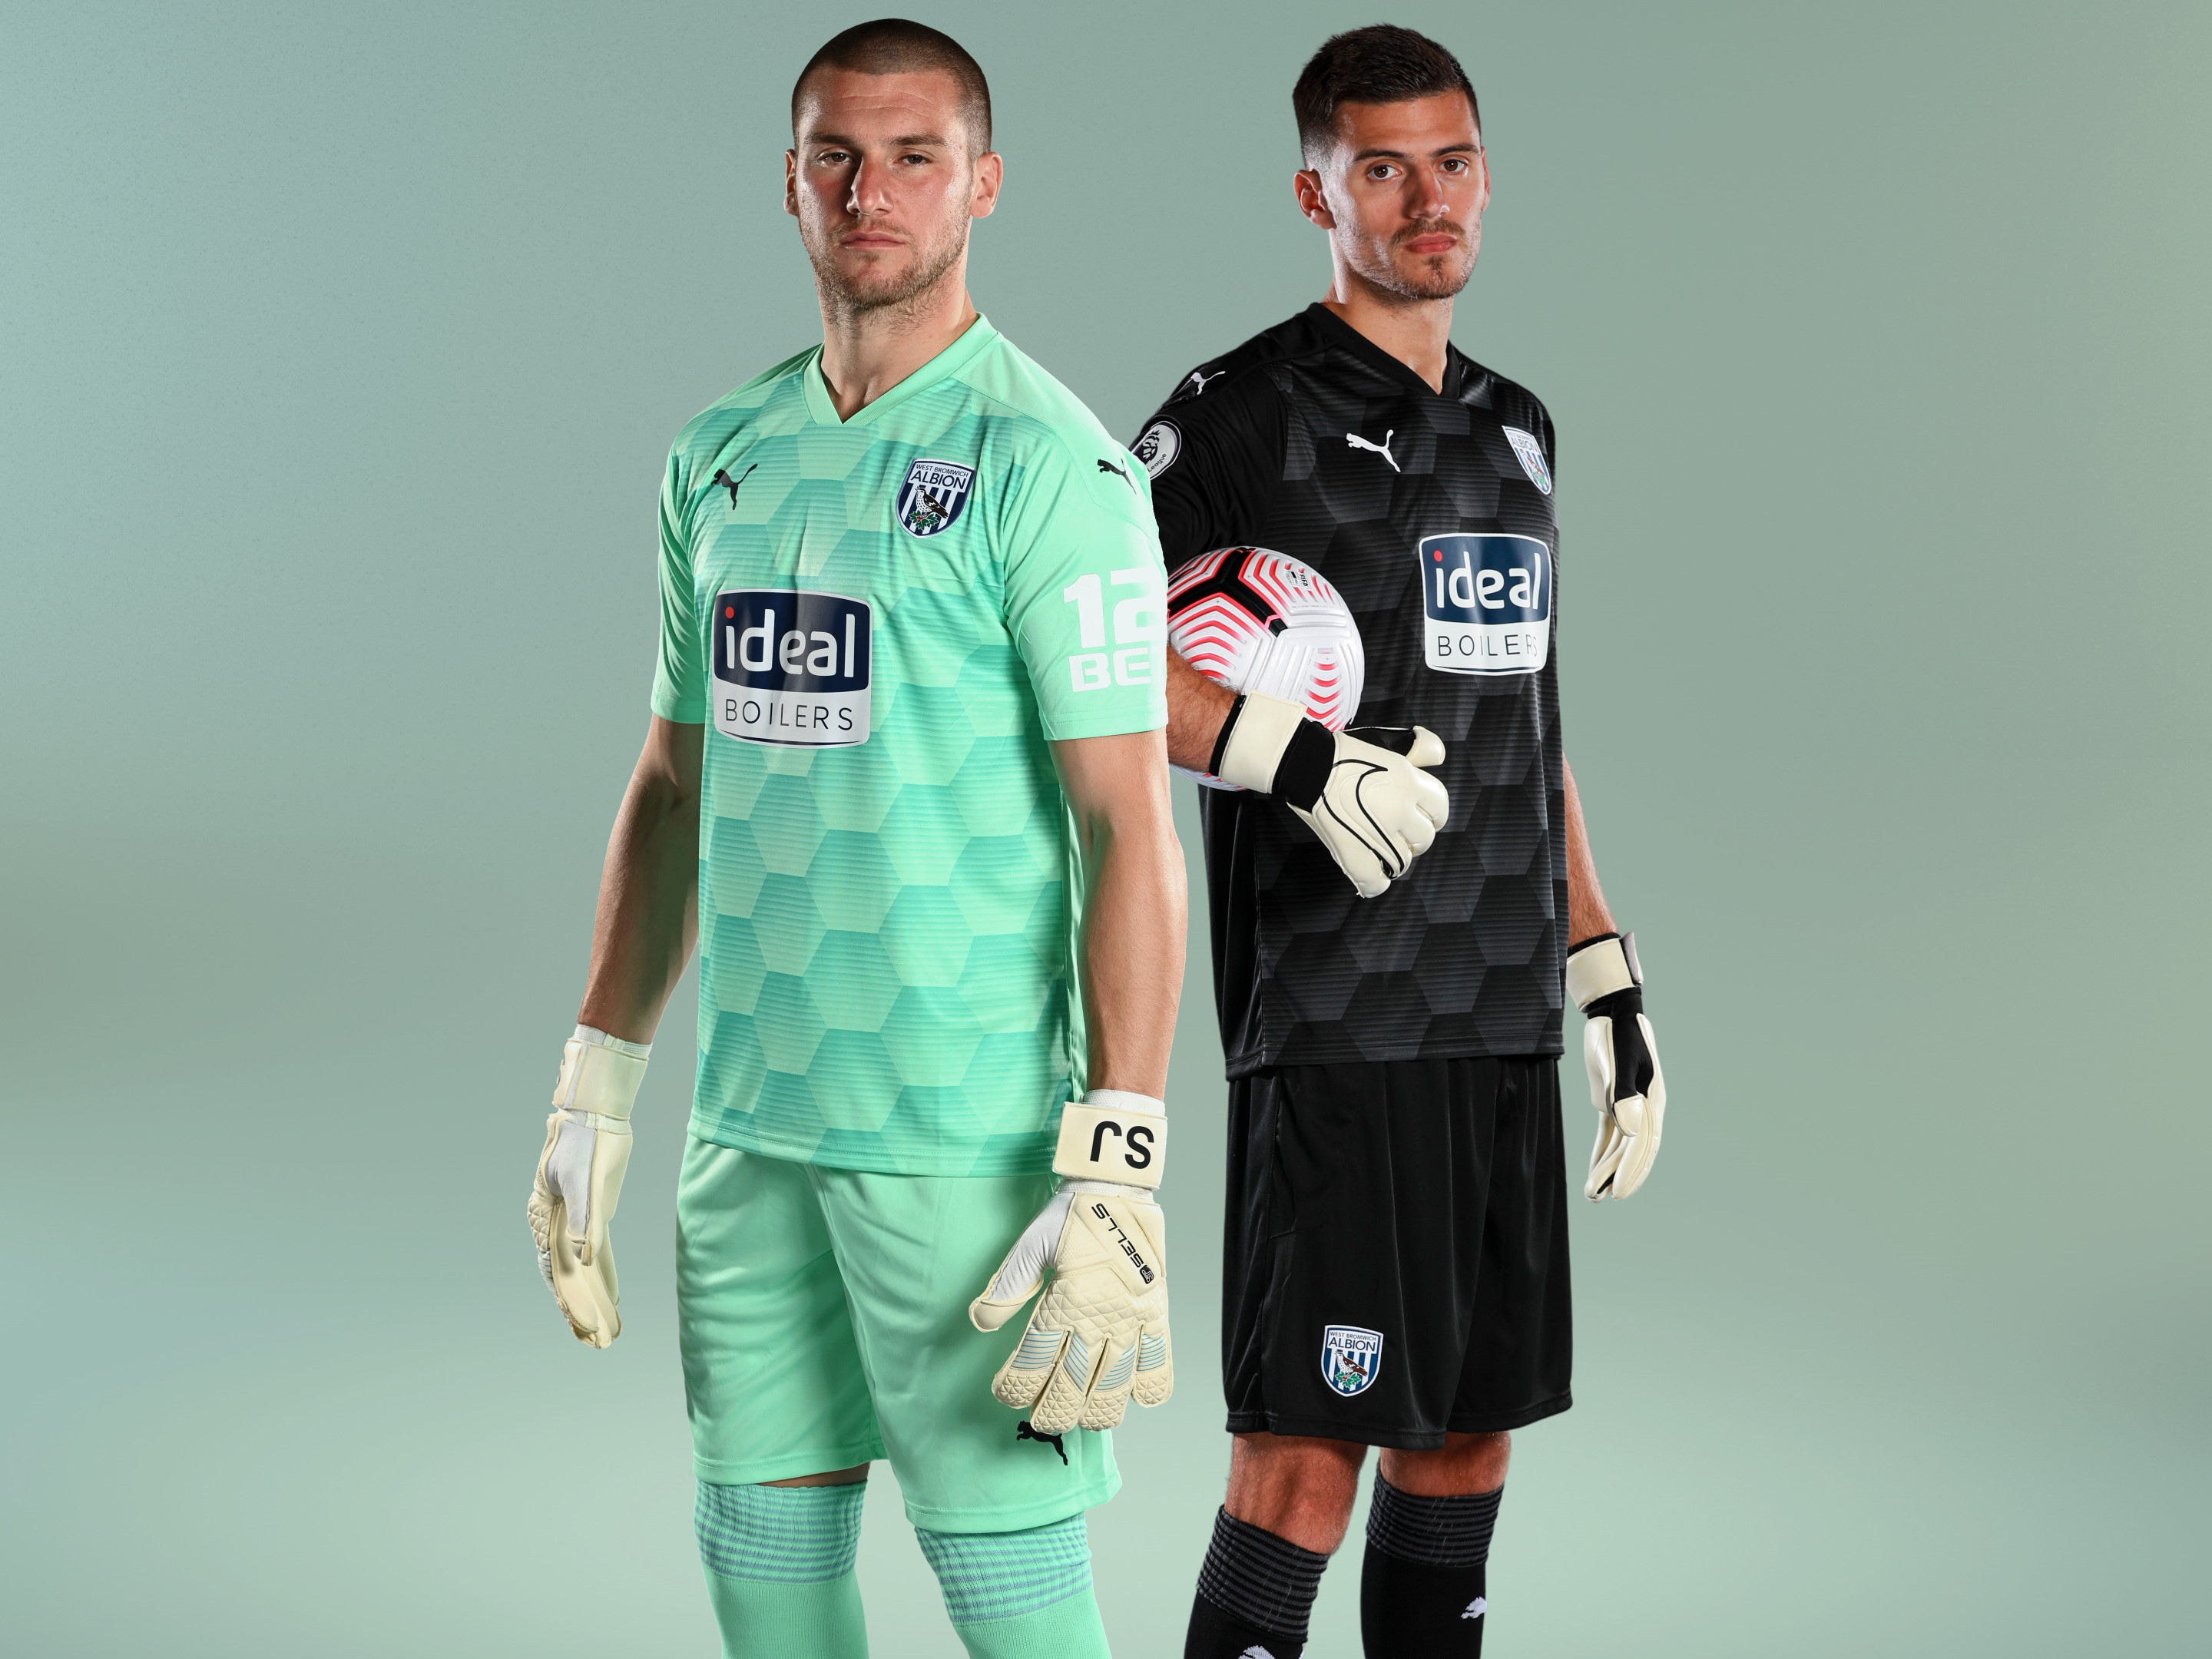 Goalkeeper Kits